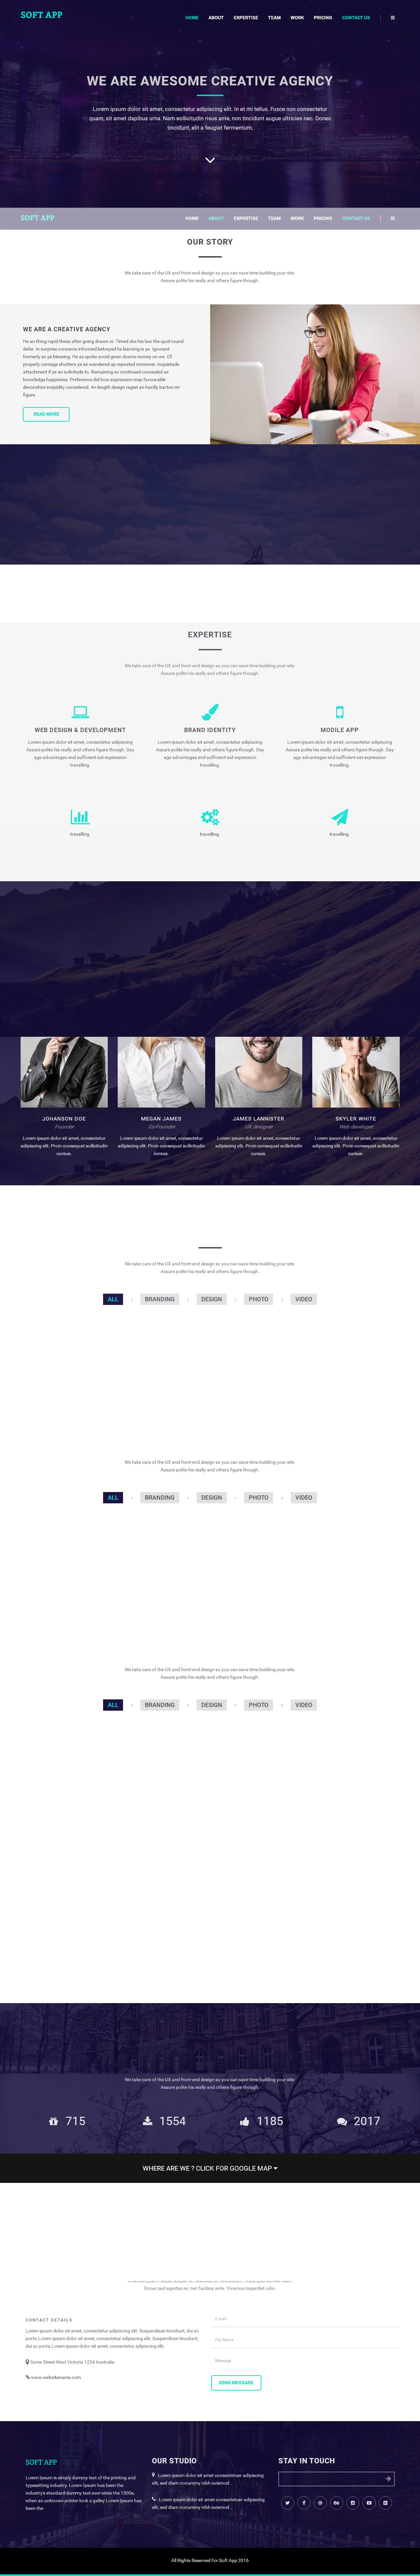 Soft App - One Page HTML Template Screenshot 2